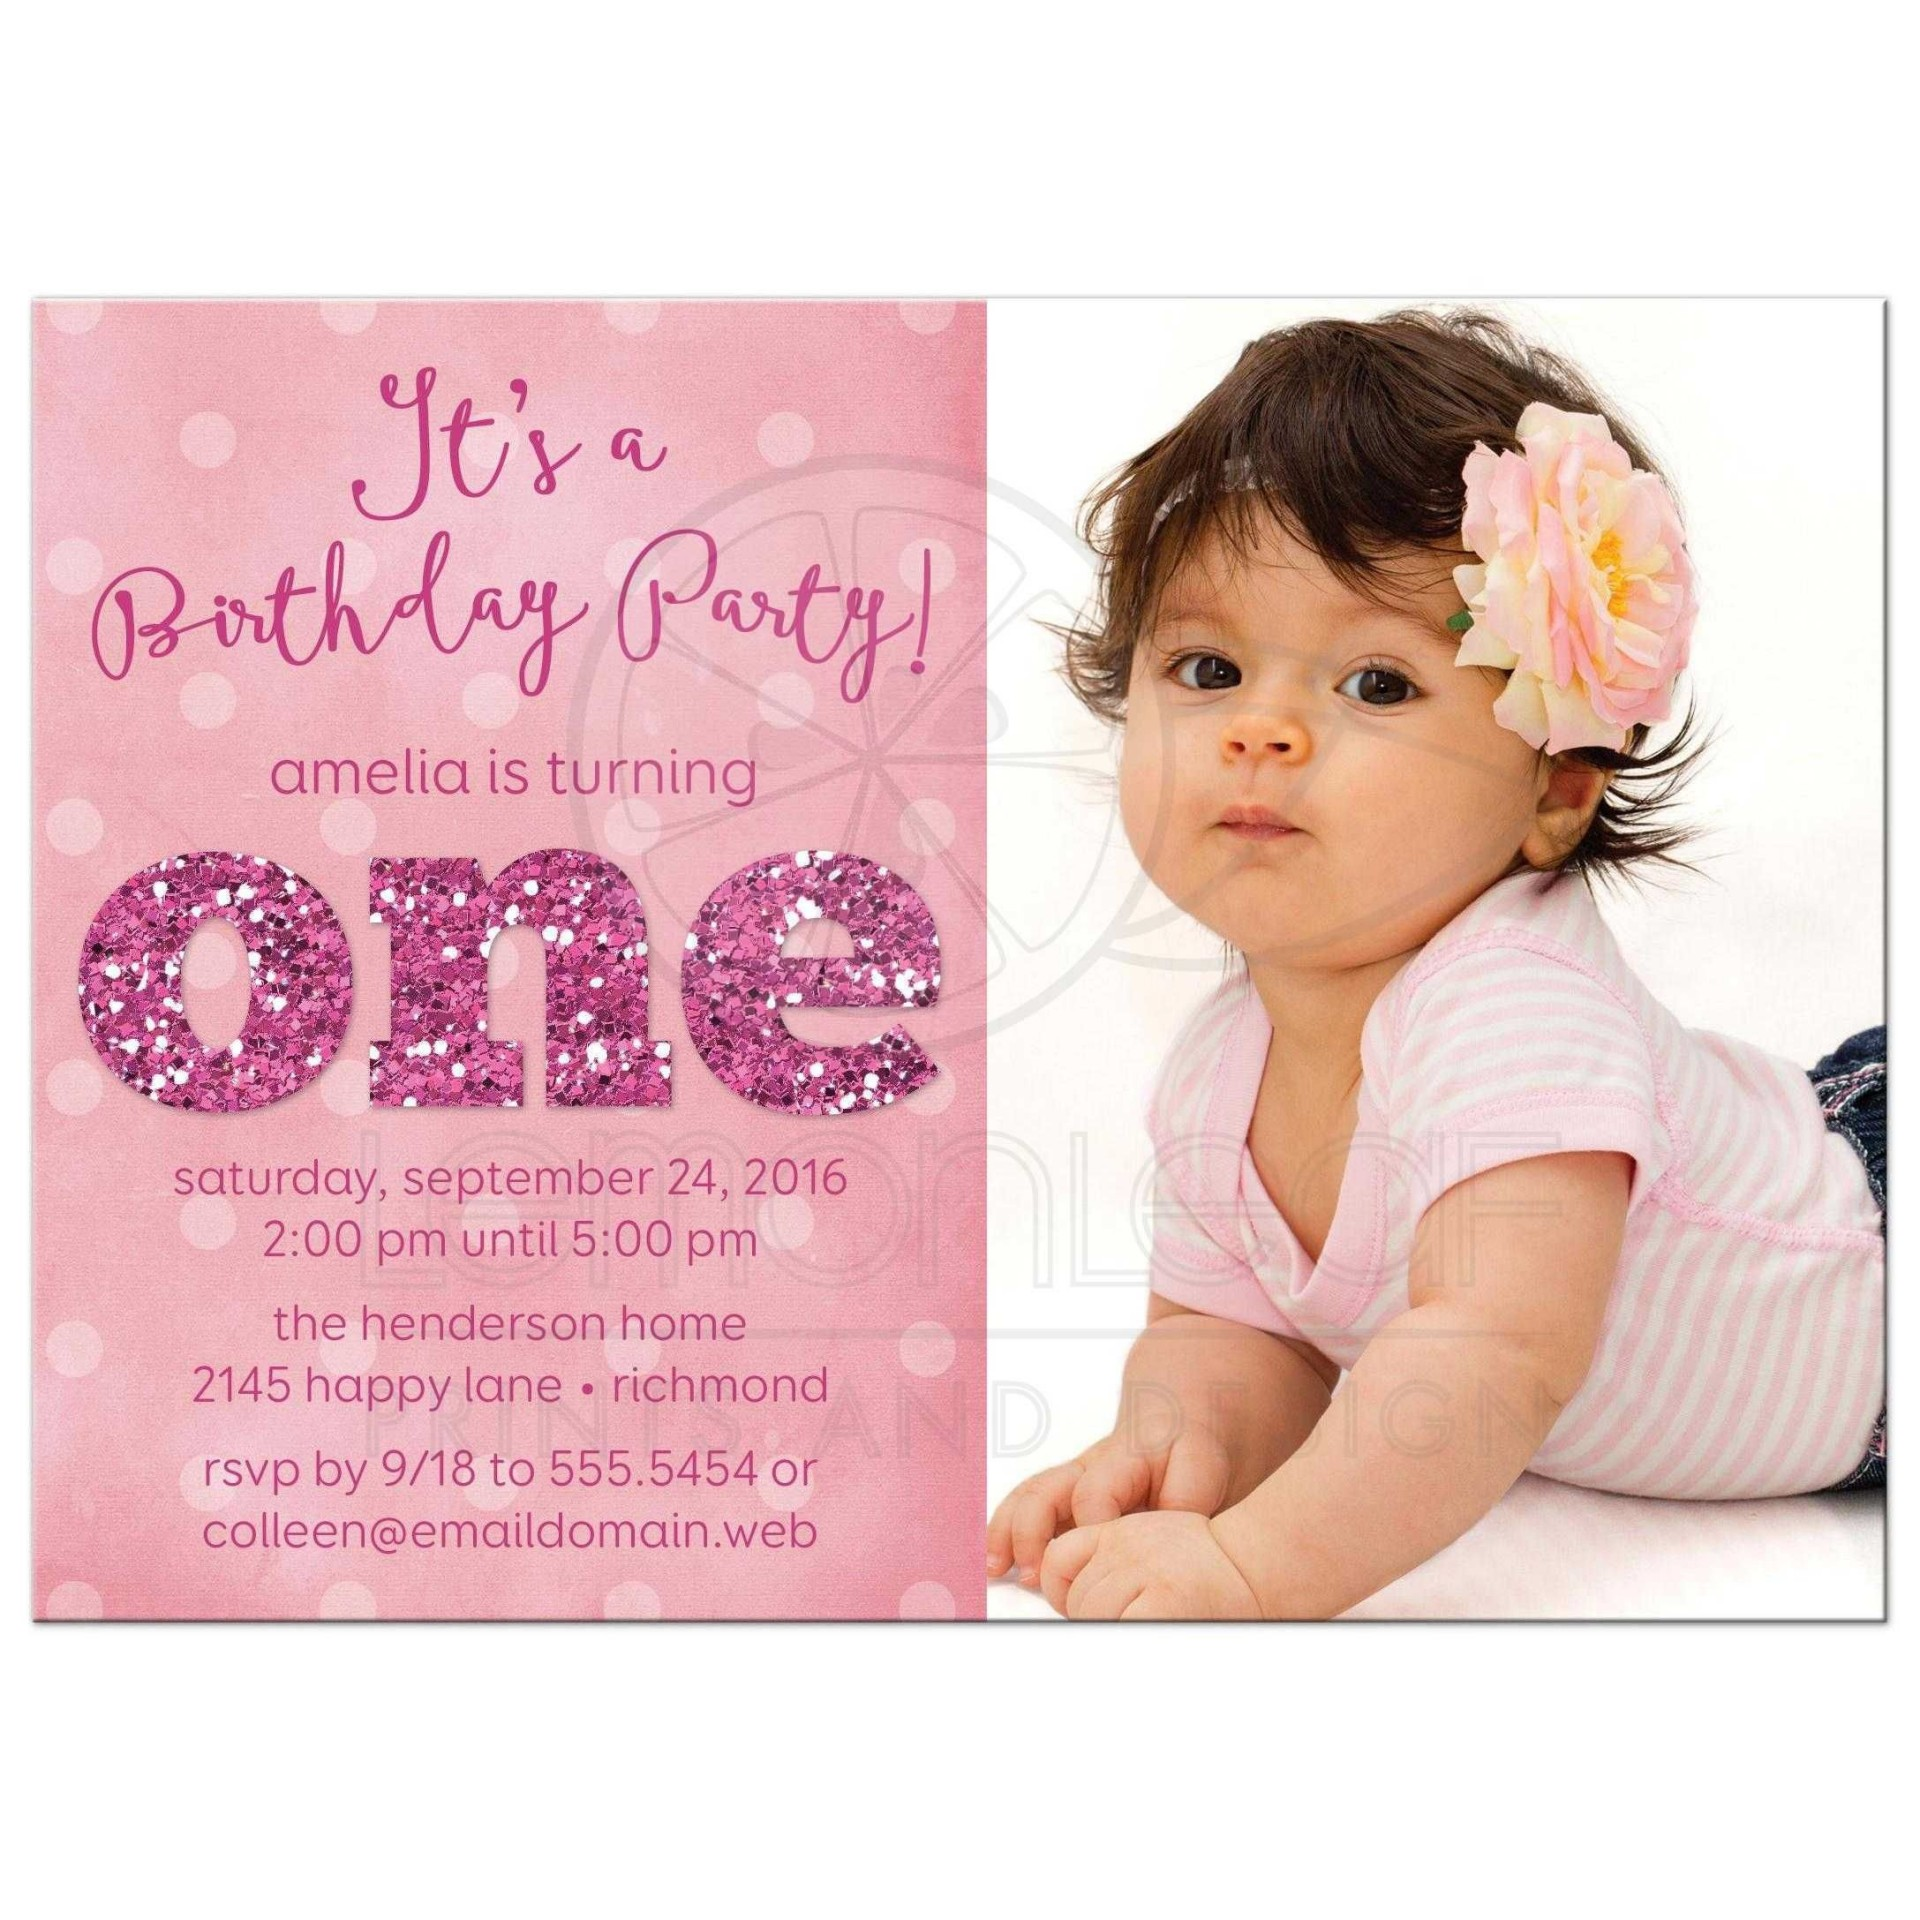 006 Archaicawful Free Online 1st Birthday Invitation Card Maker For Twin Inspiration 1920